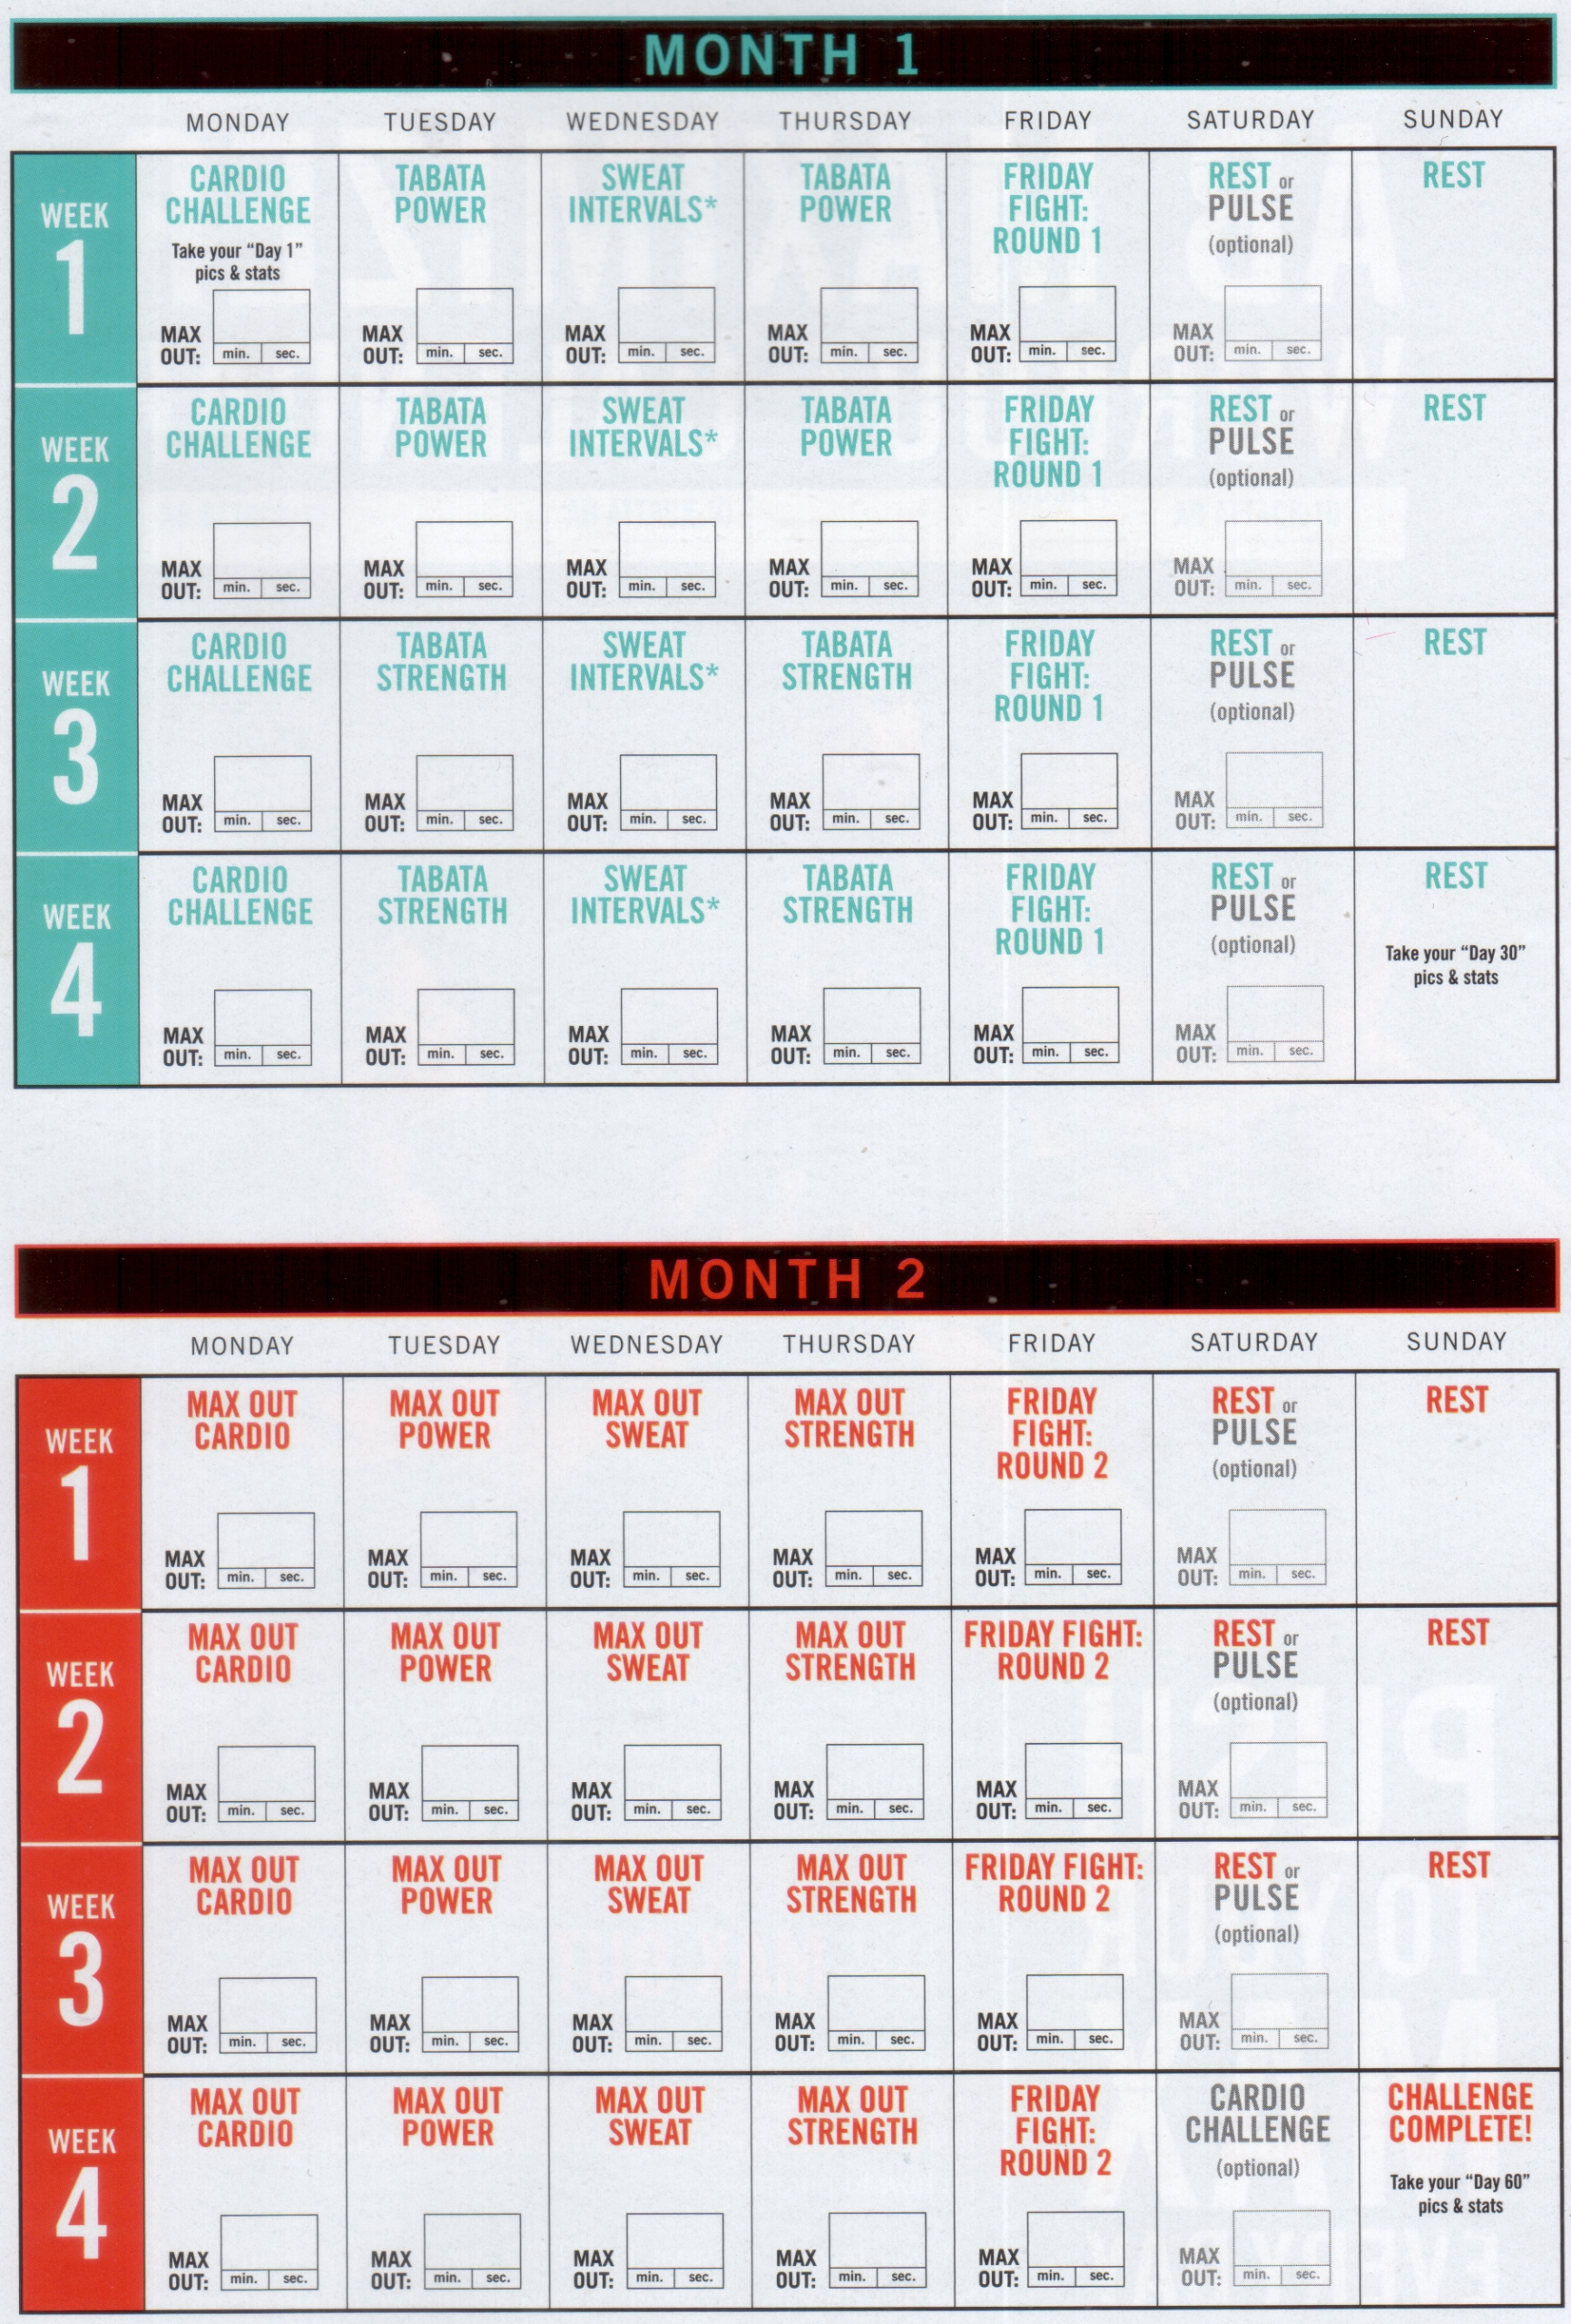 Insanity 3 Month Calendar  Example Calendar Printable with Insanity Max 30 Schedule Month 2